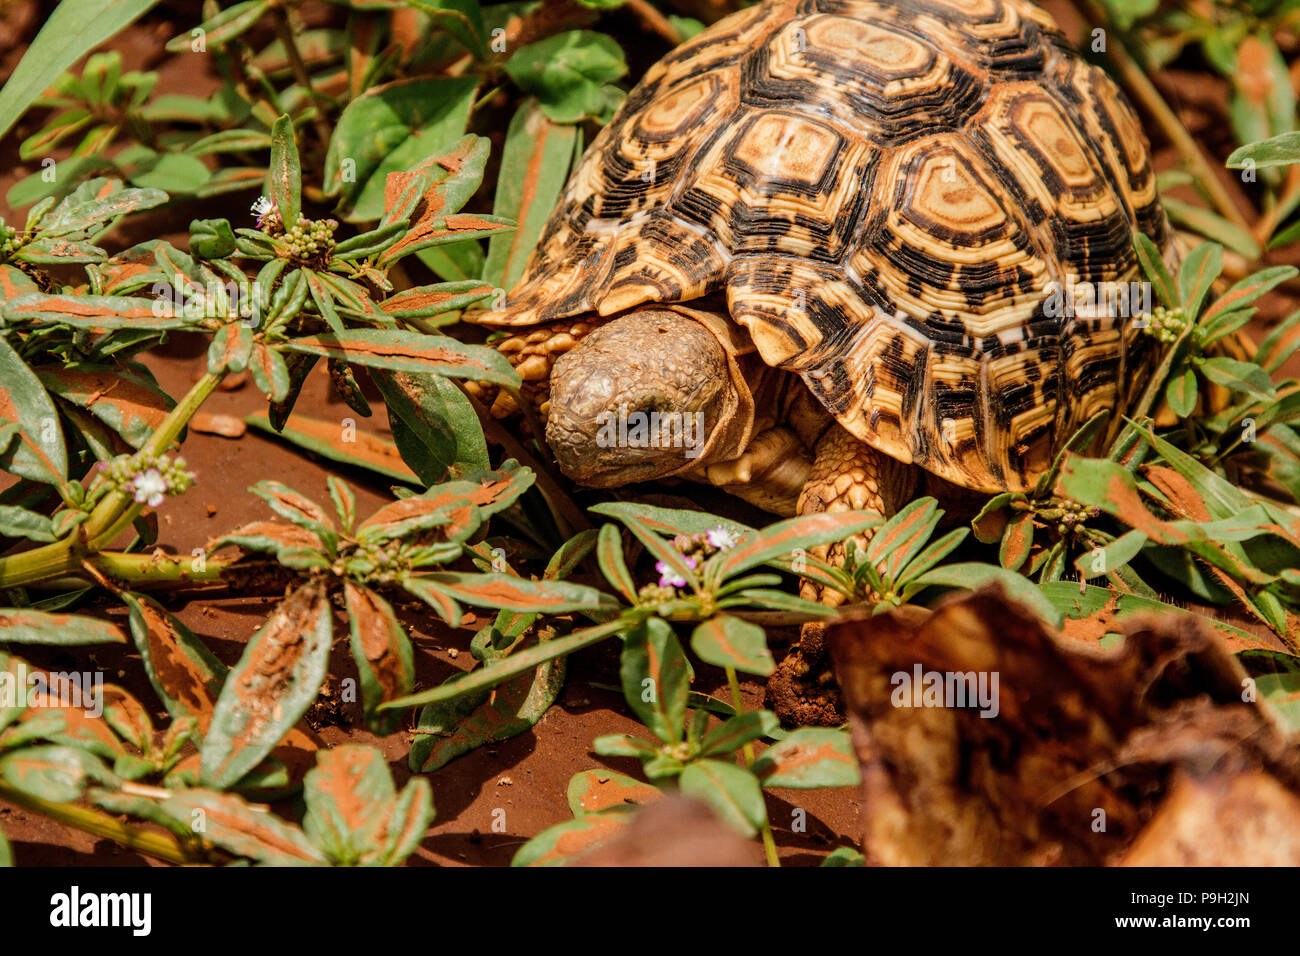 Leopard tortoise - Geochelone pardalis - out looking for food in Namibia. - Stock Image